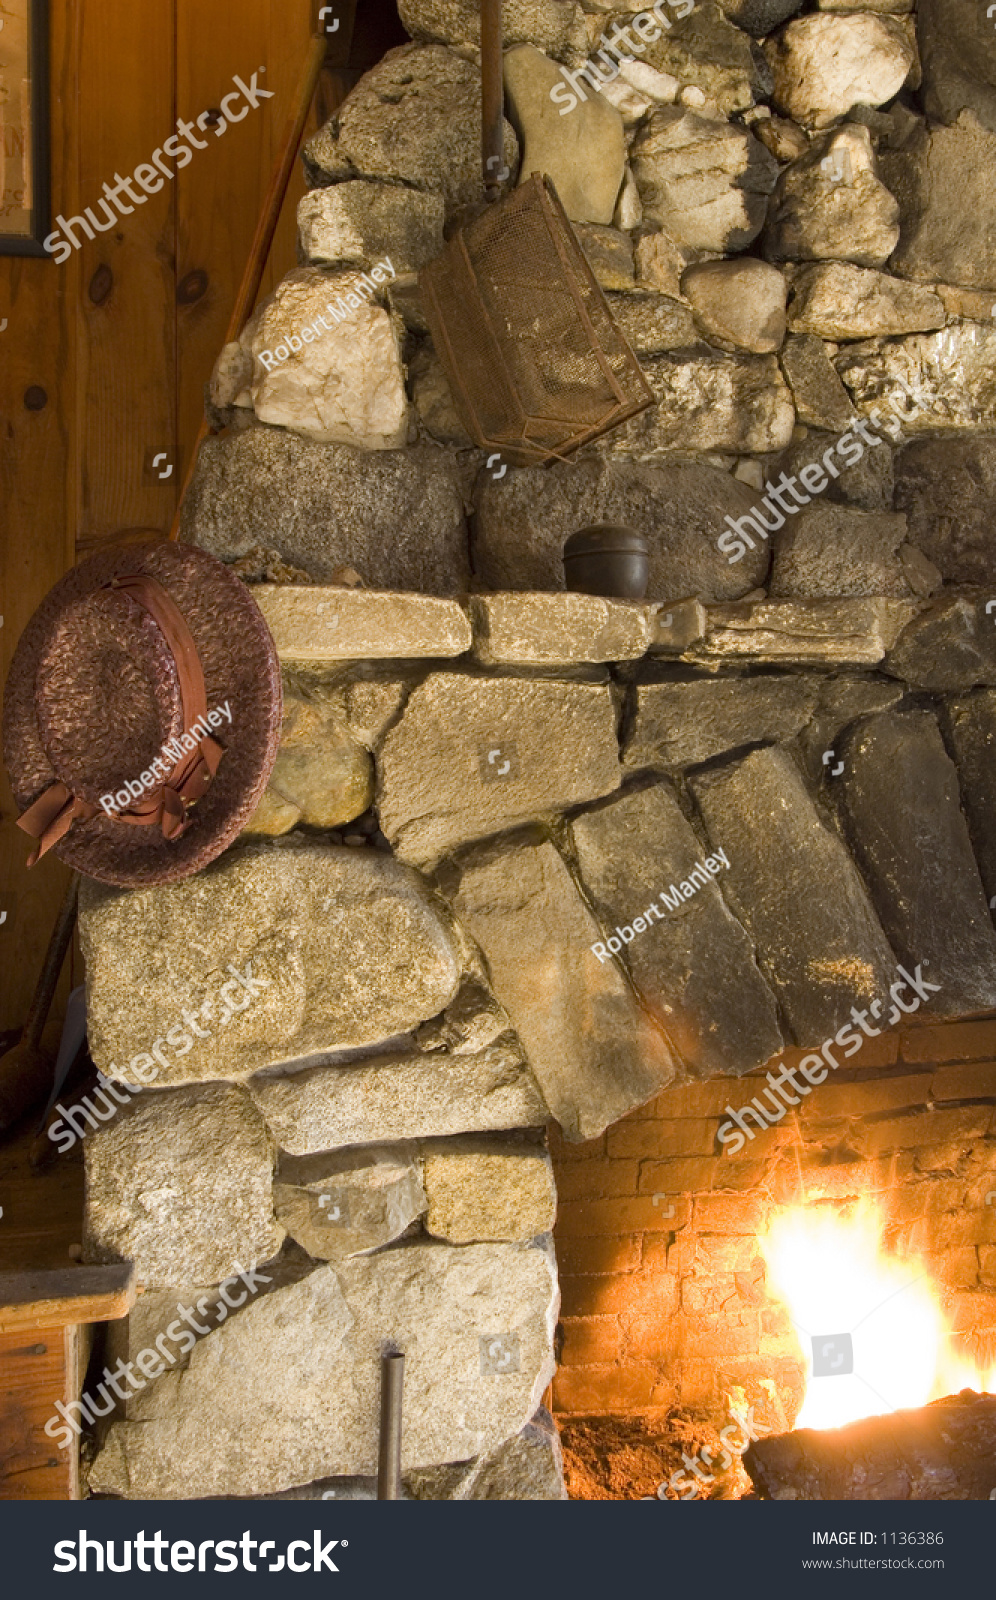 old stone fireplace. Old Stone Fireplace Straw Hat Hanging Stock Photo 1136386 stone fireplace